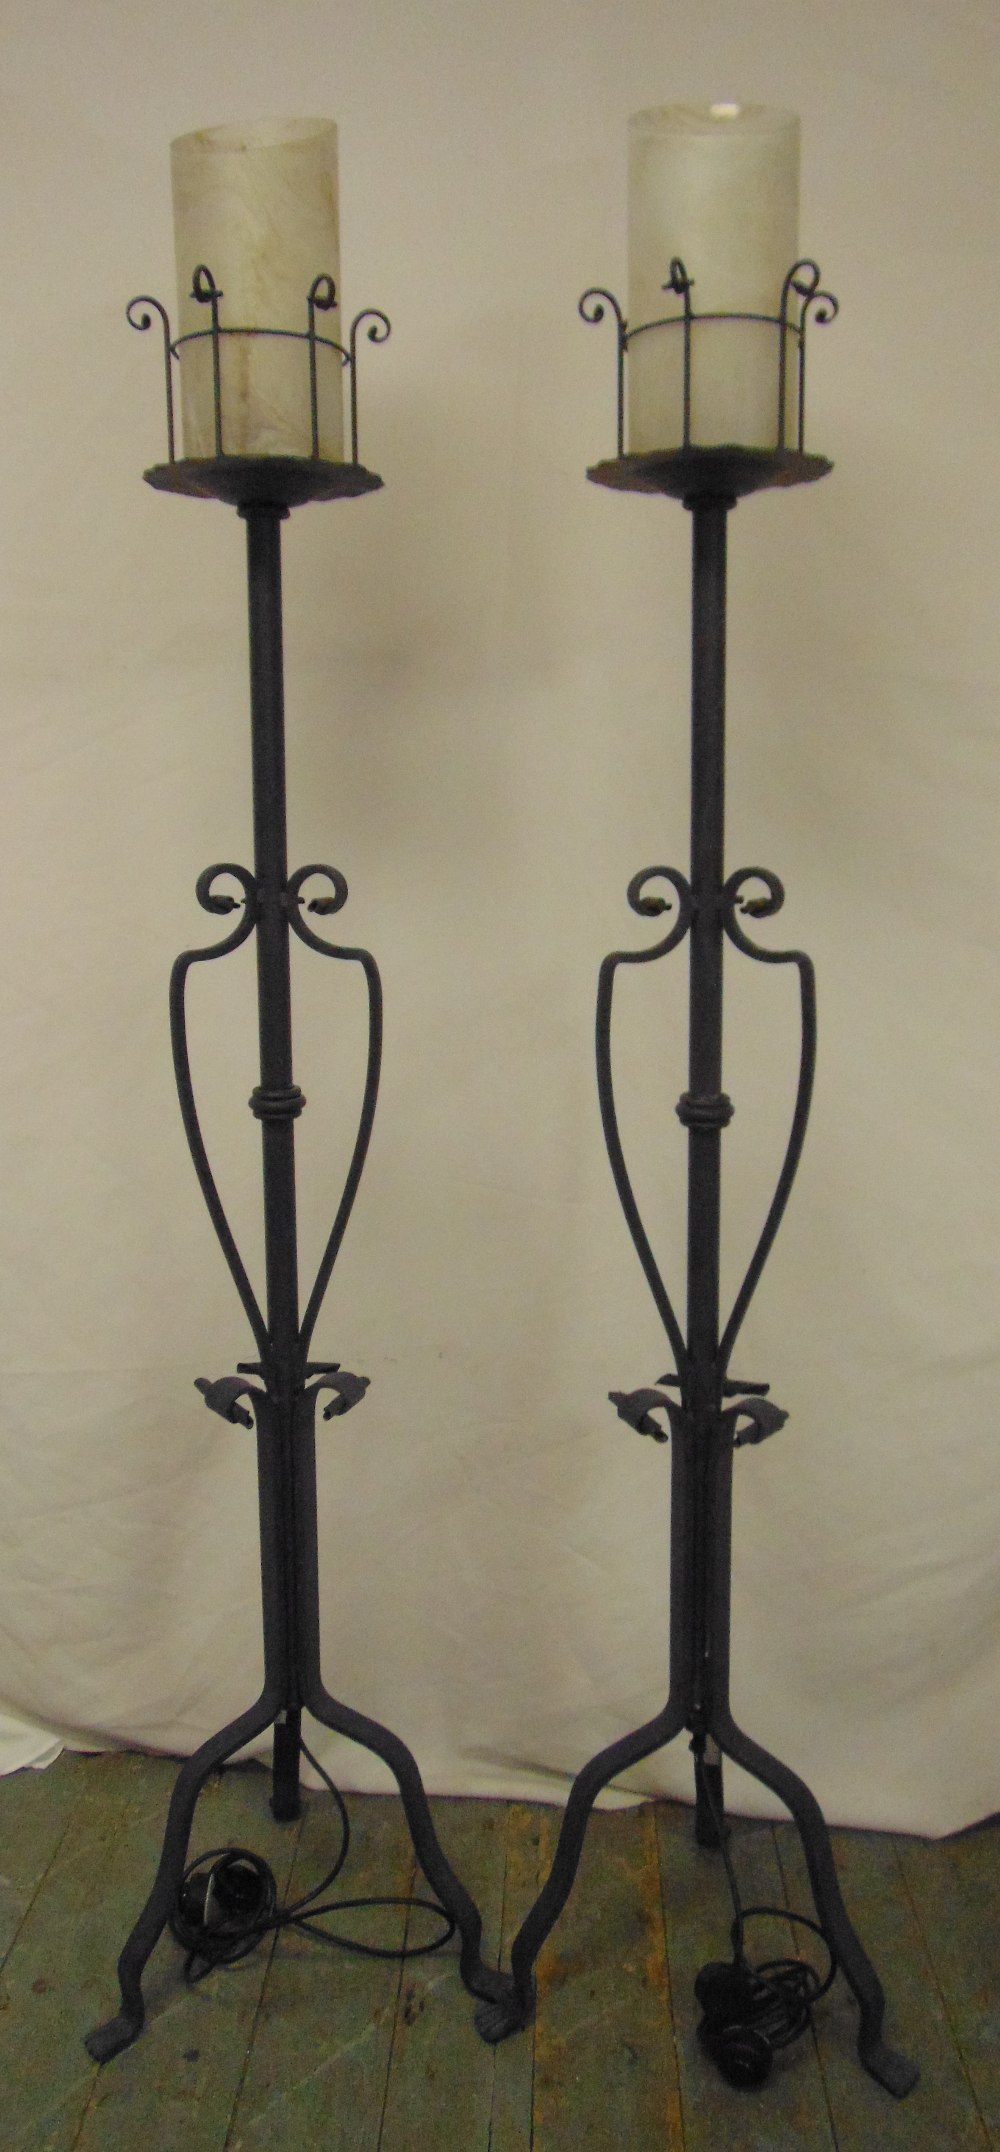 Lot 49 - A pair of painted wrought iron candle holders converted to electricity on three scroll supports